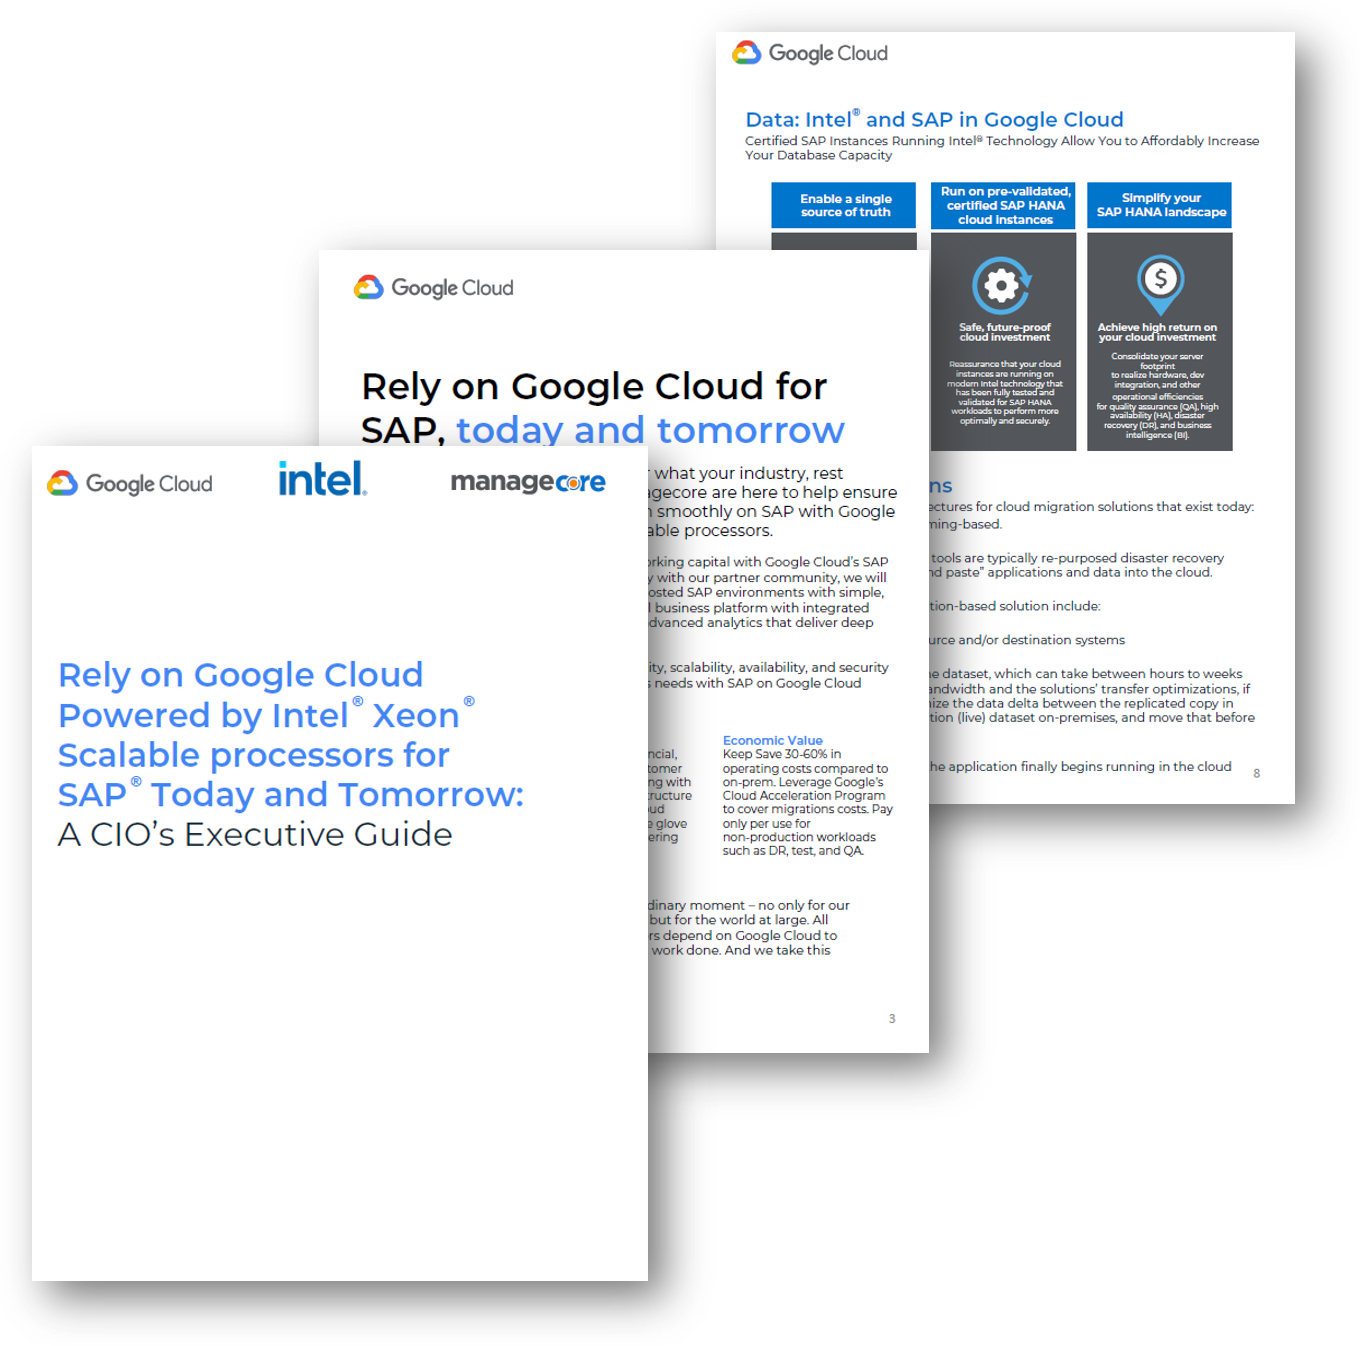 Rely on Google Cloud powered by Intel for SAP Today and Tomorrow: A CIO's Executive Guide